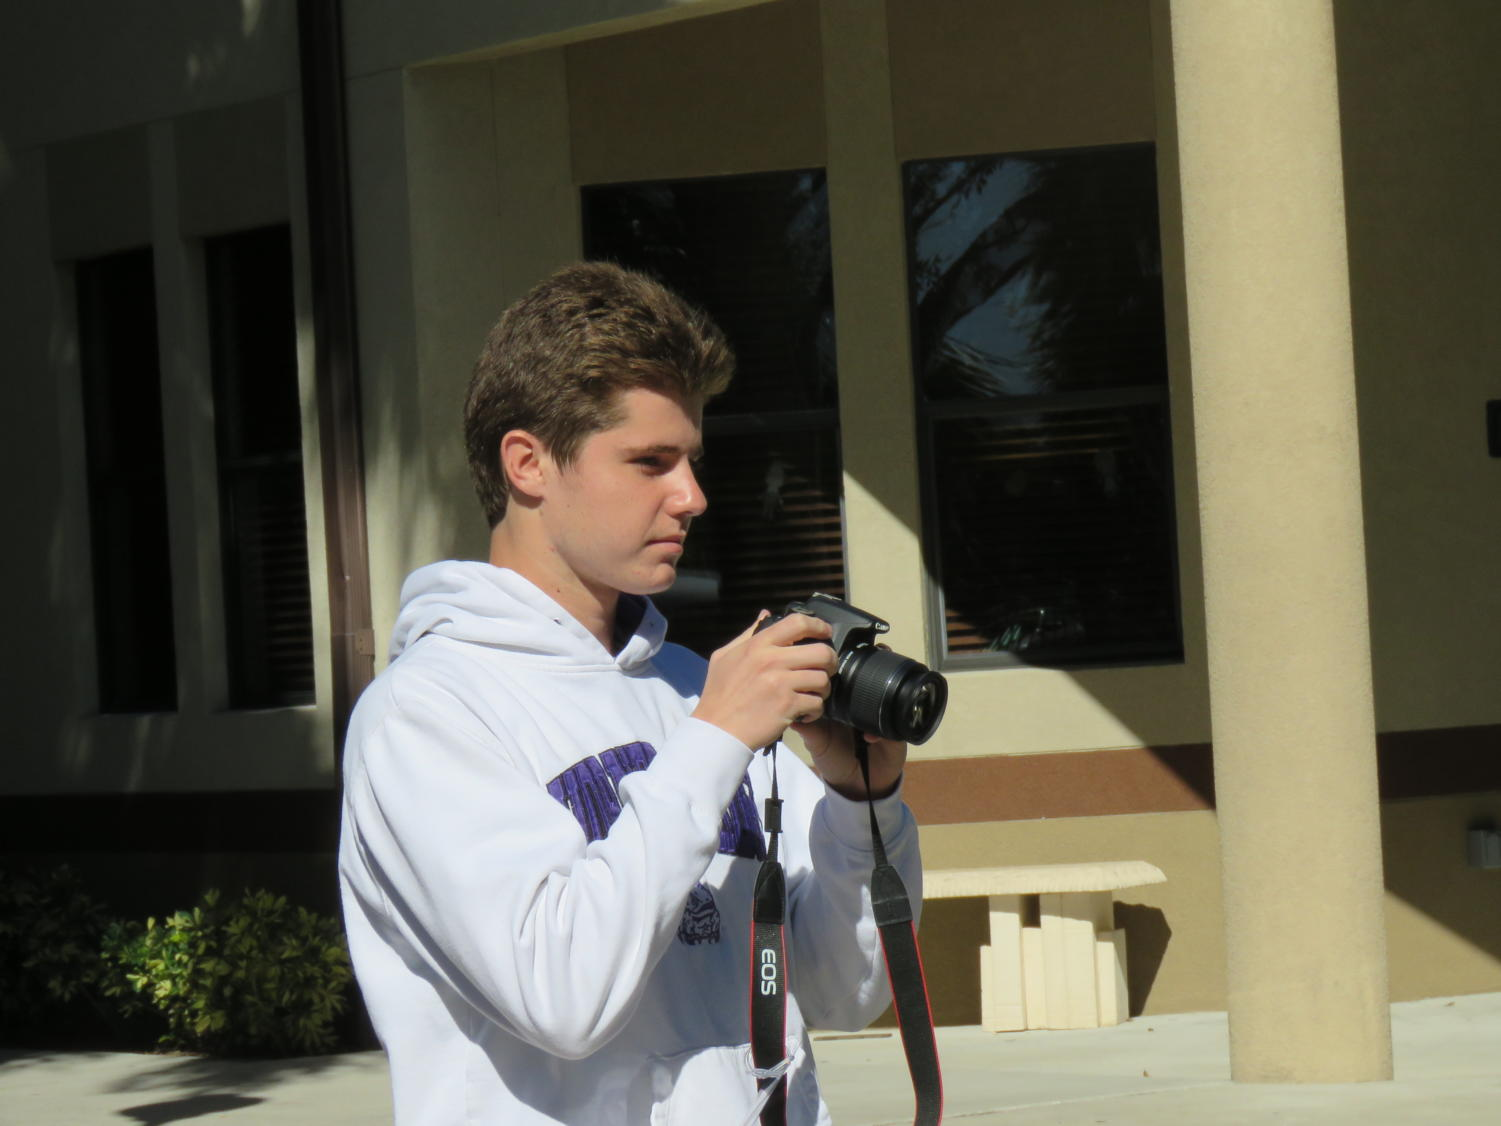 Senior Jarrett Millican taking photos in the Palm Courtyard.